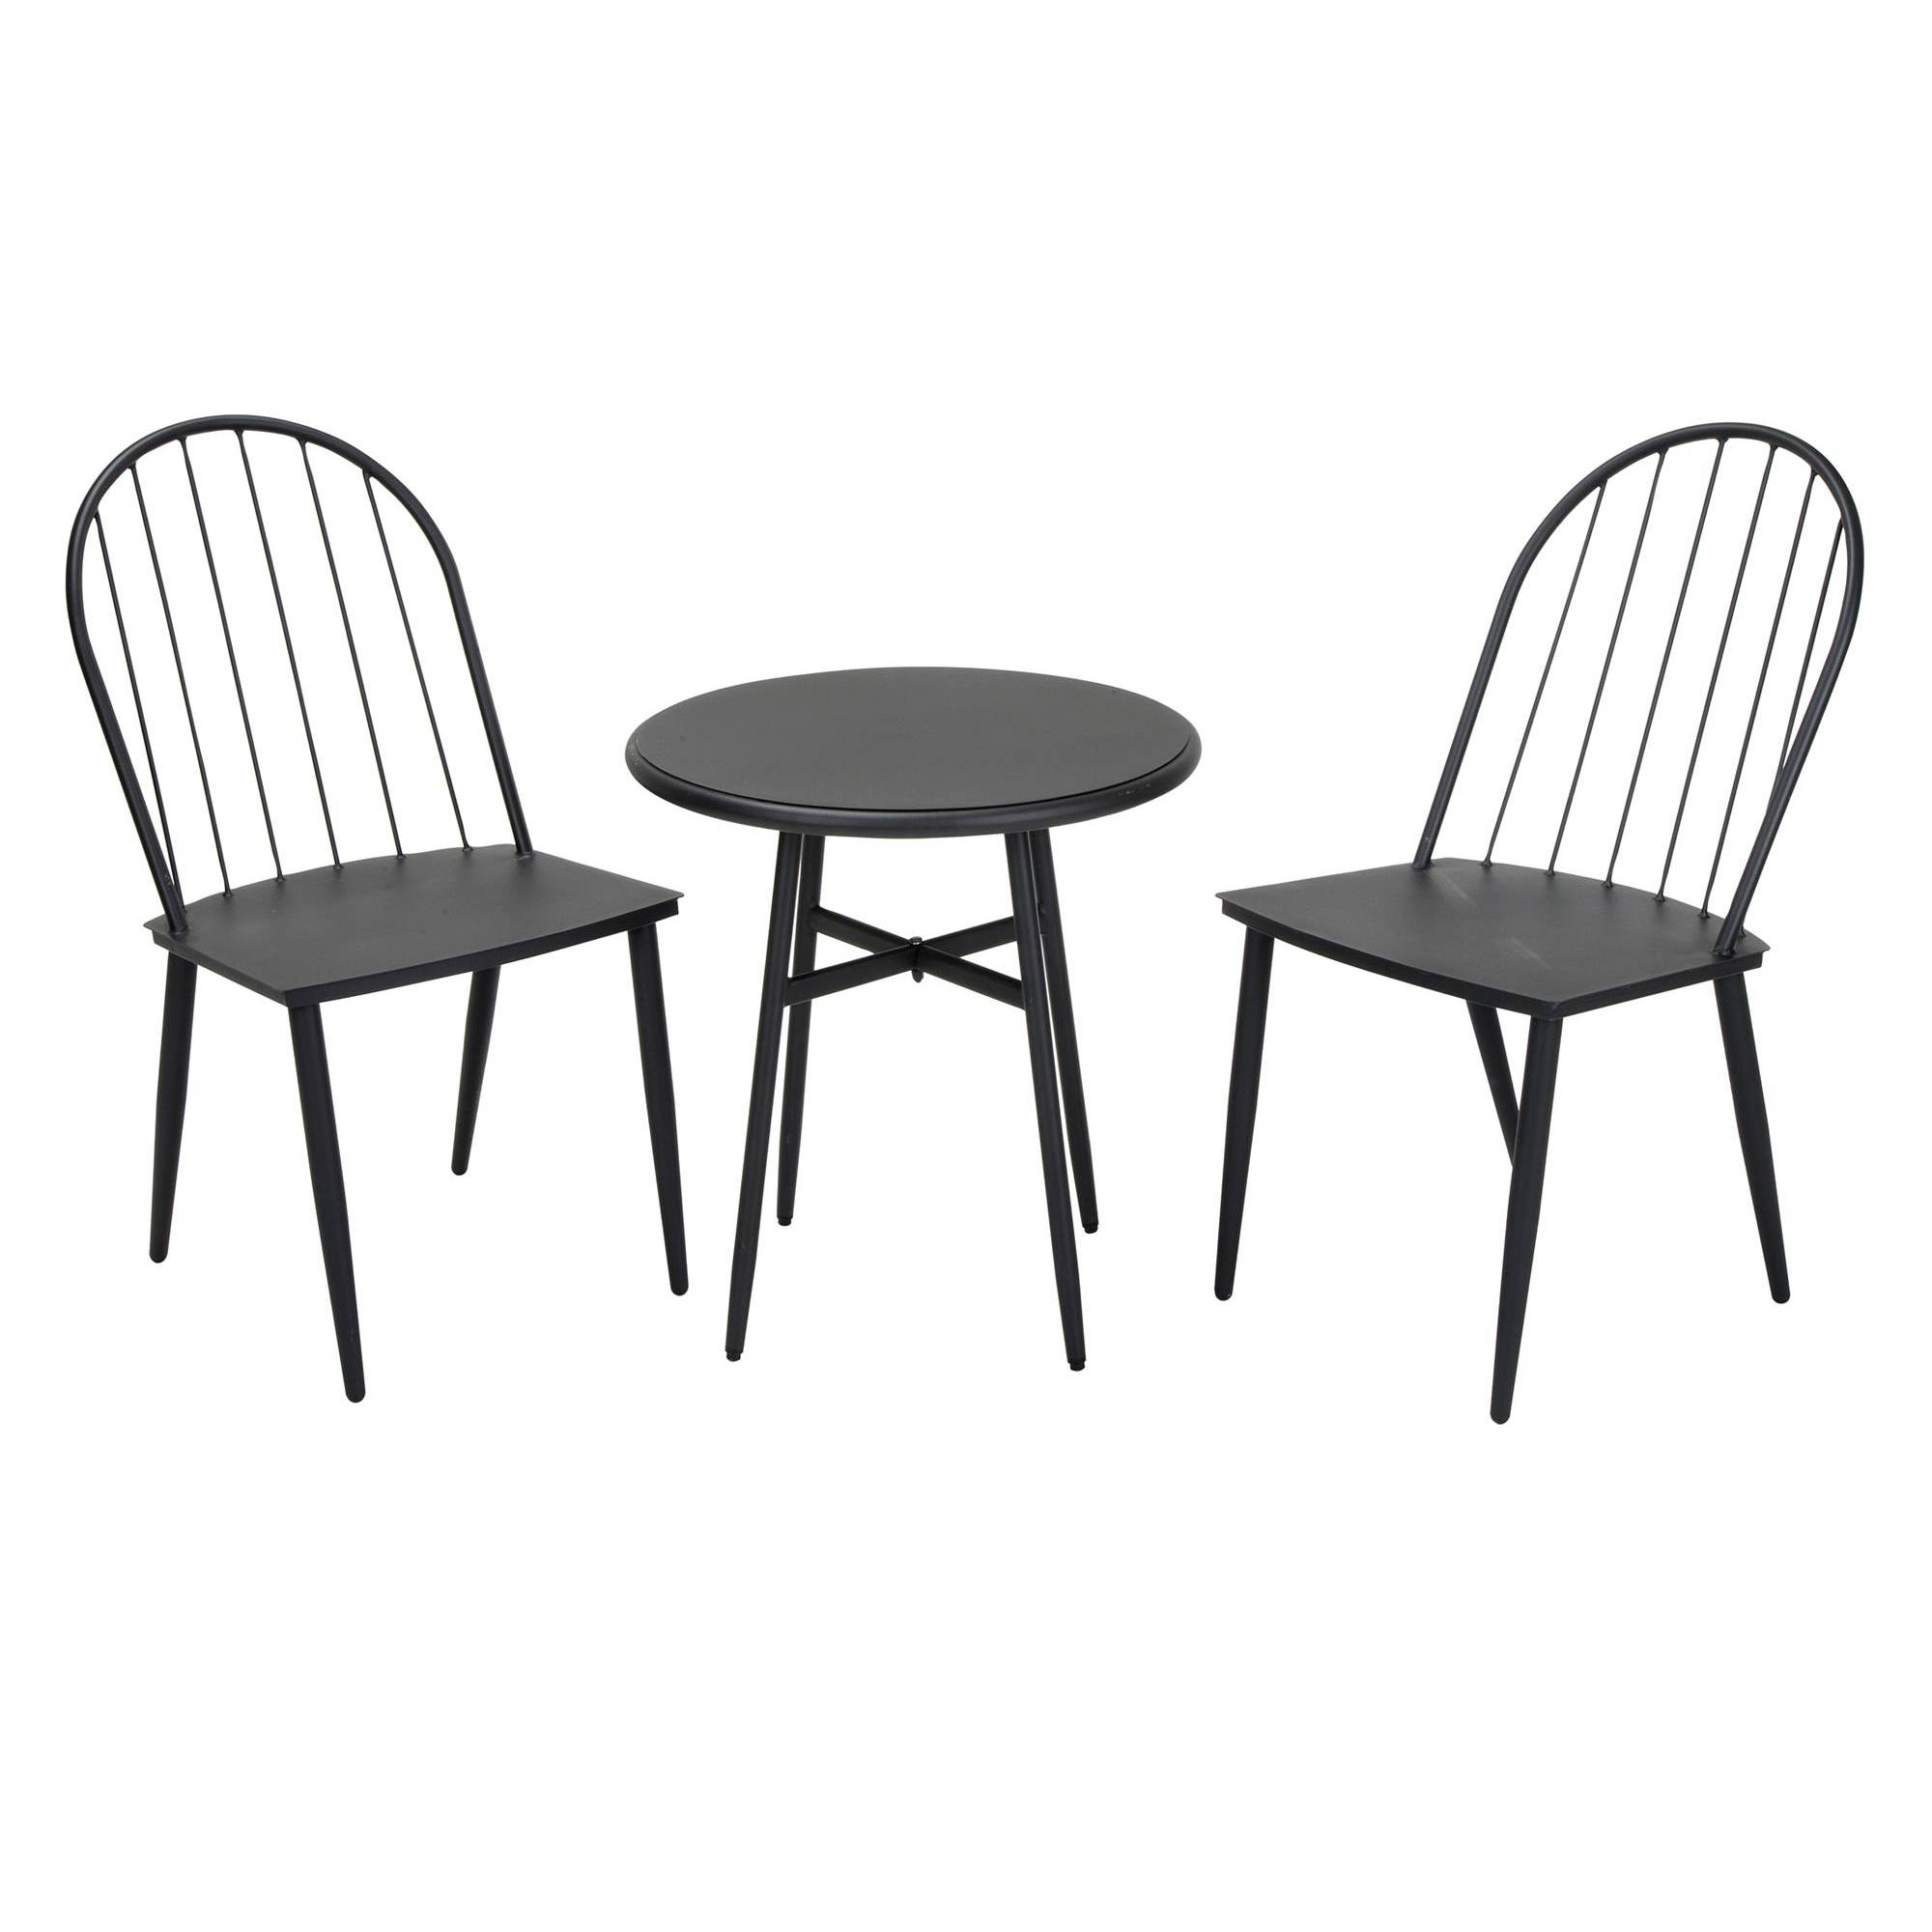 Novogratz 3-Piece Bistro Set, Black